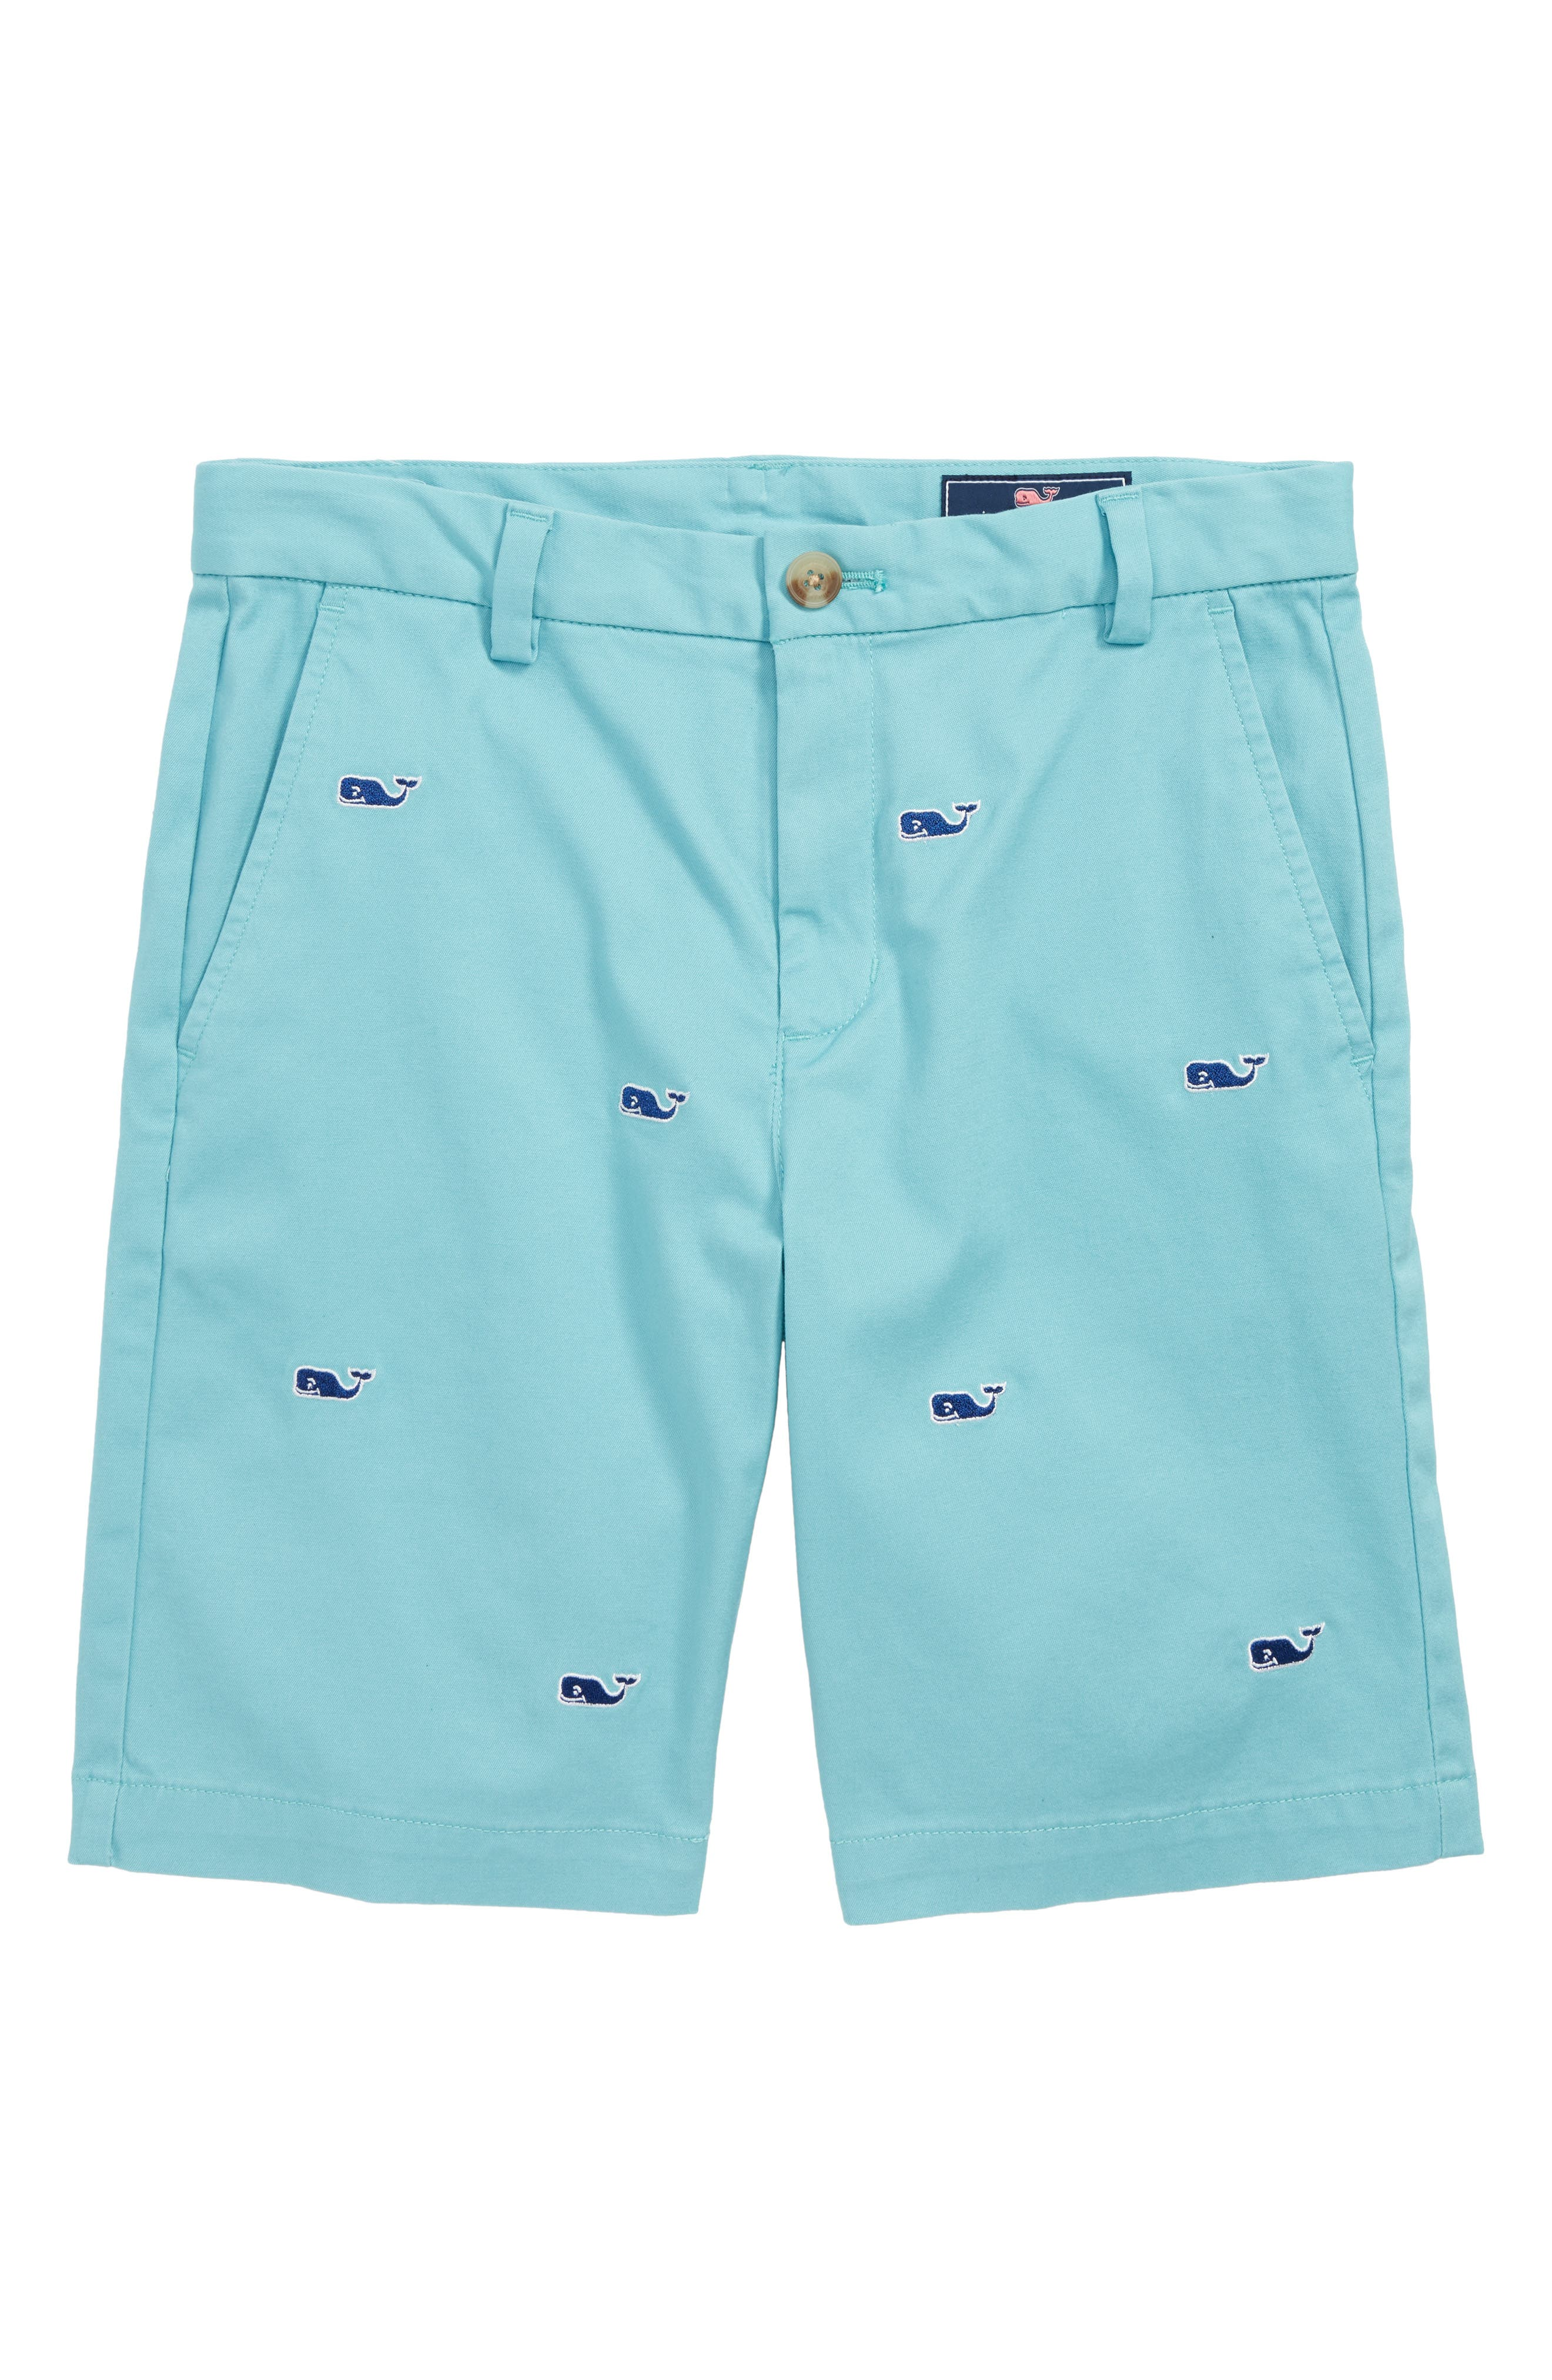 Whale Embroidered Breaker Shorts,                             Main thumbnail 1, color,                             AQUA OCEAN